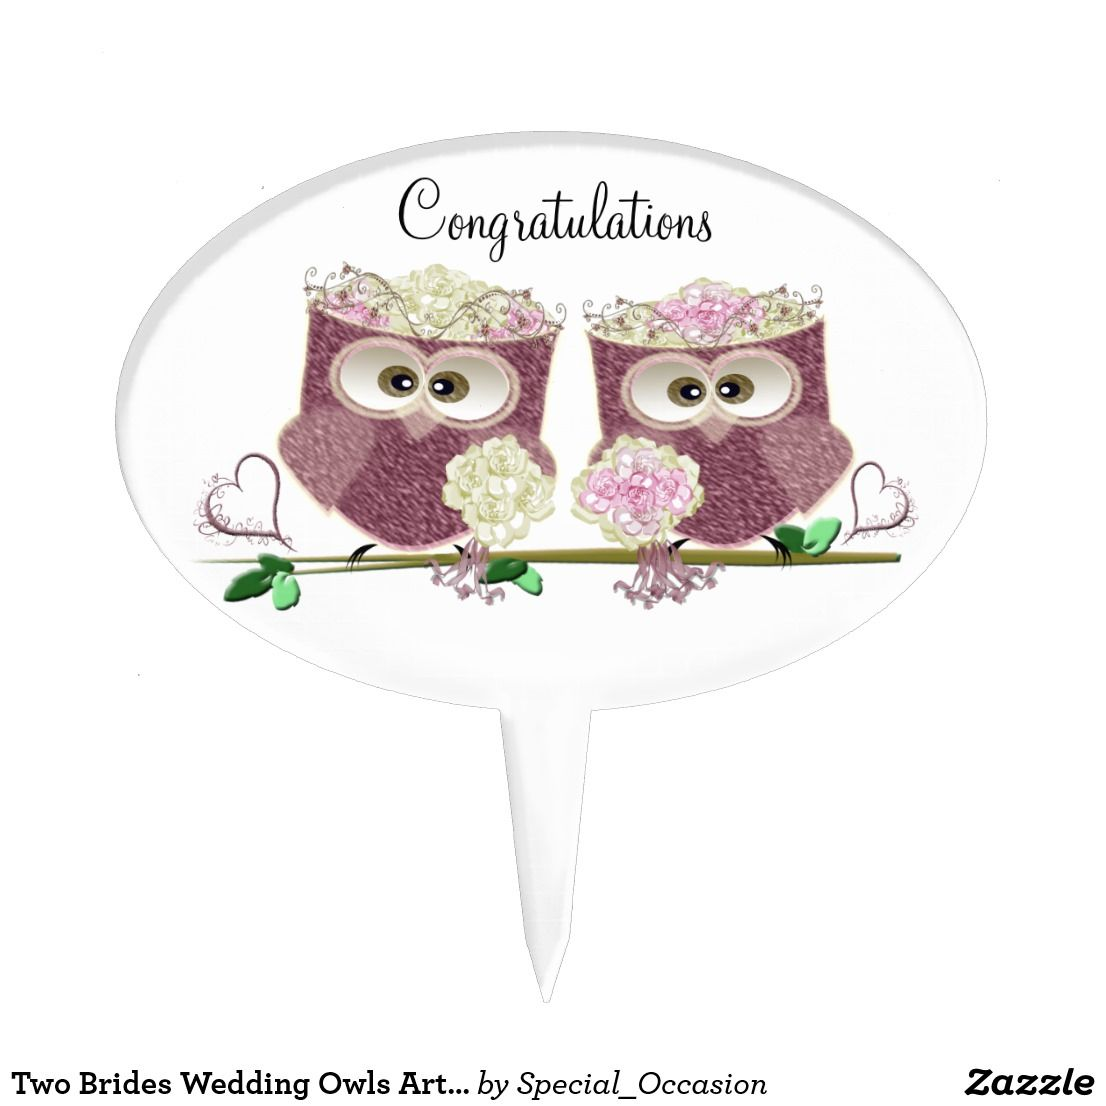 Two Brides Wedding Owls Art Gifts Cake Topper | Wedding cake and ...